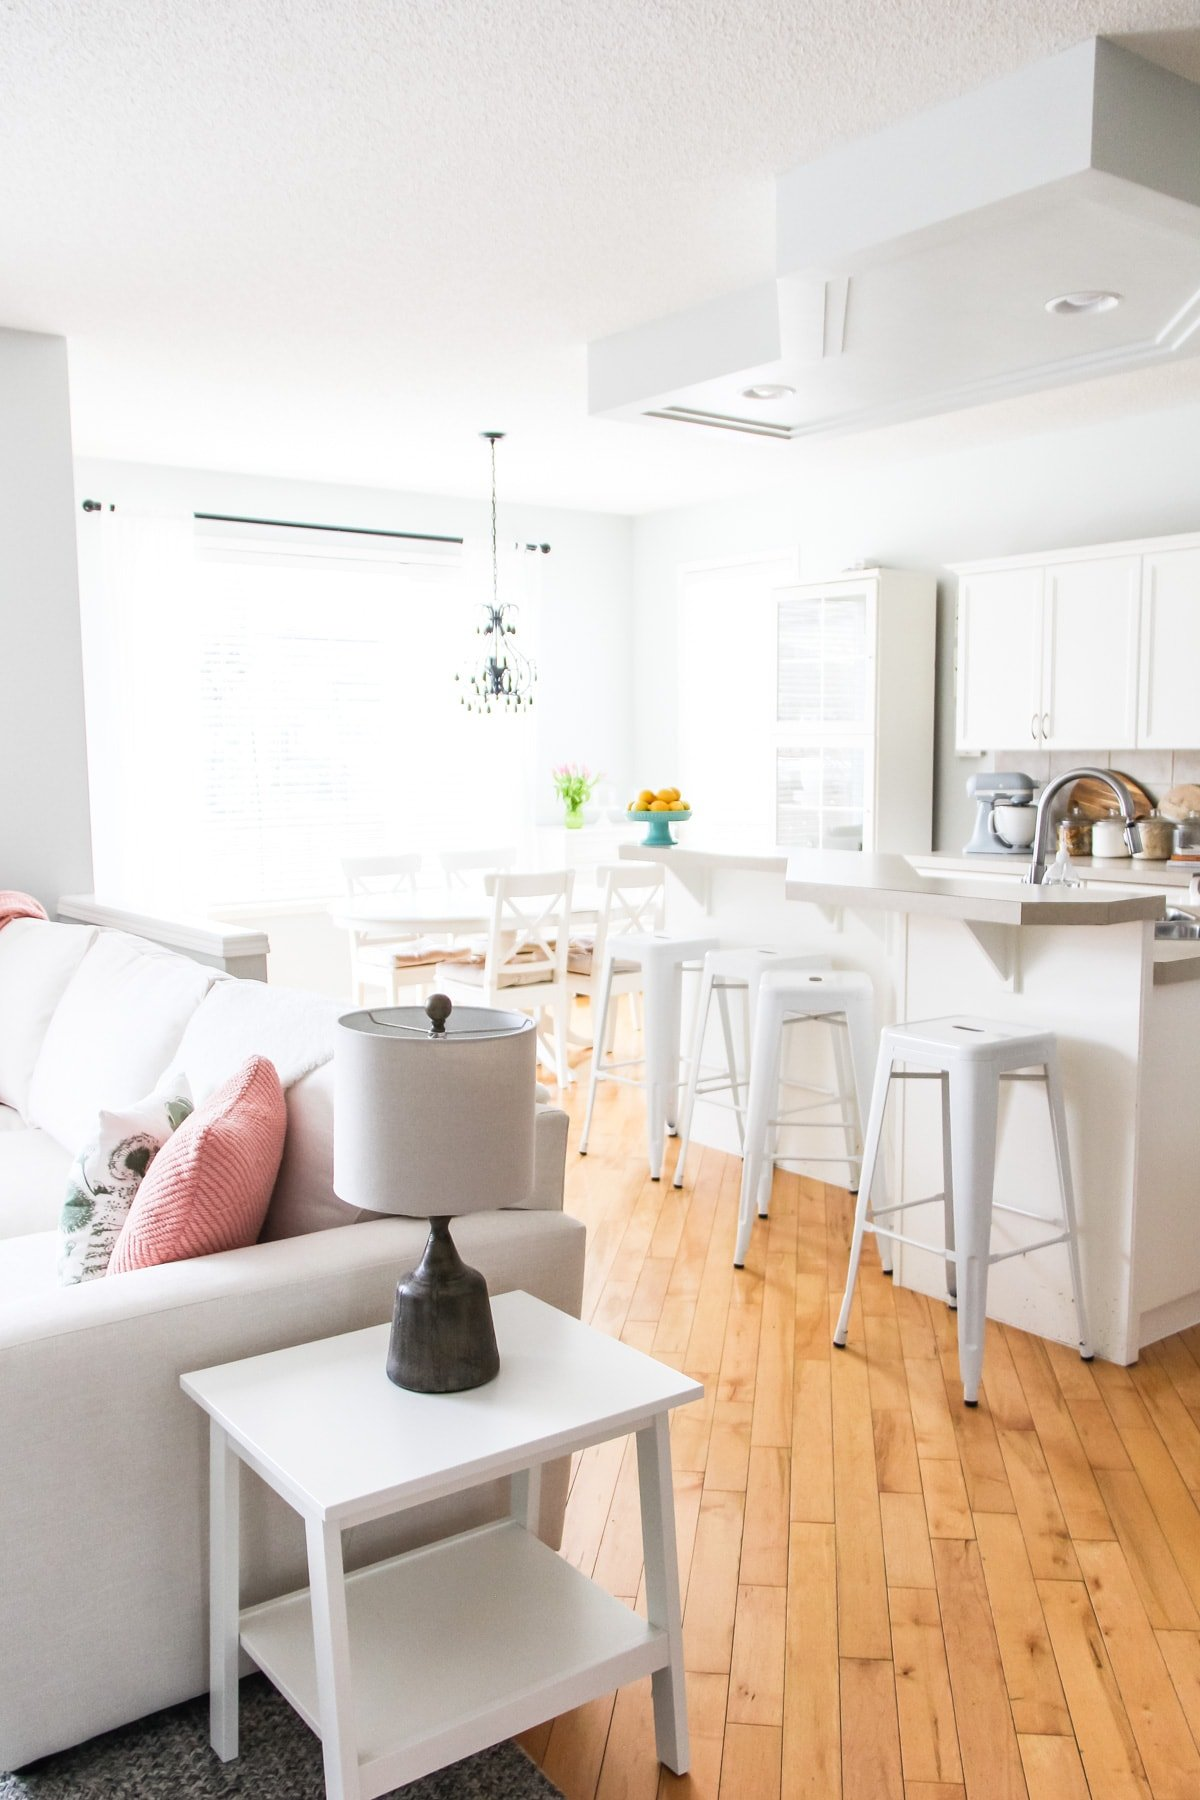 a view of a bright white kitchen space